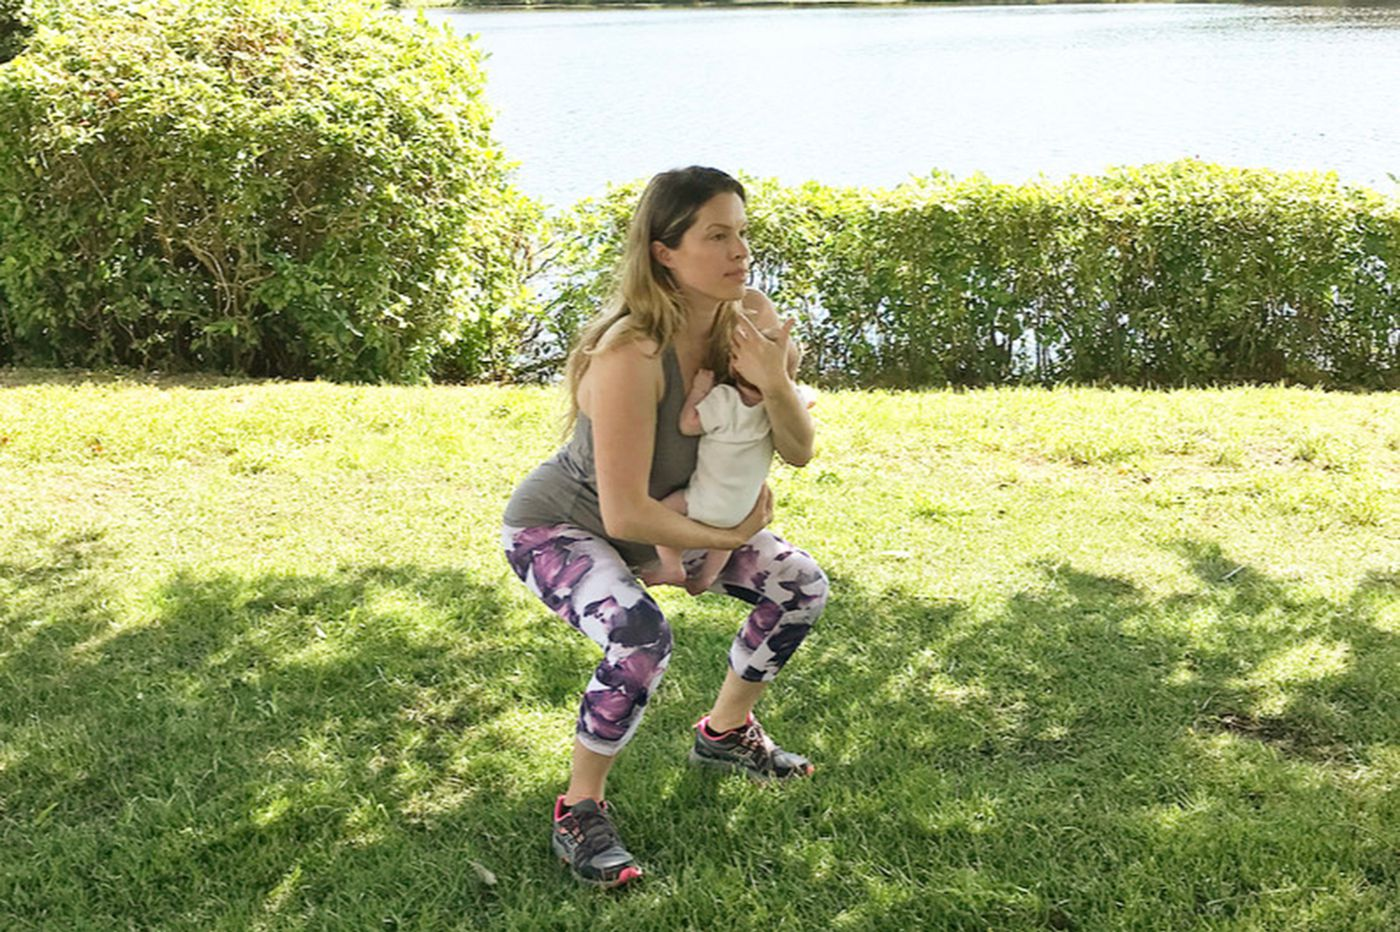 Getting fit for parenthood: 3 simple ways to stay in shape with kids